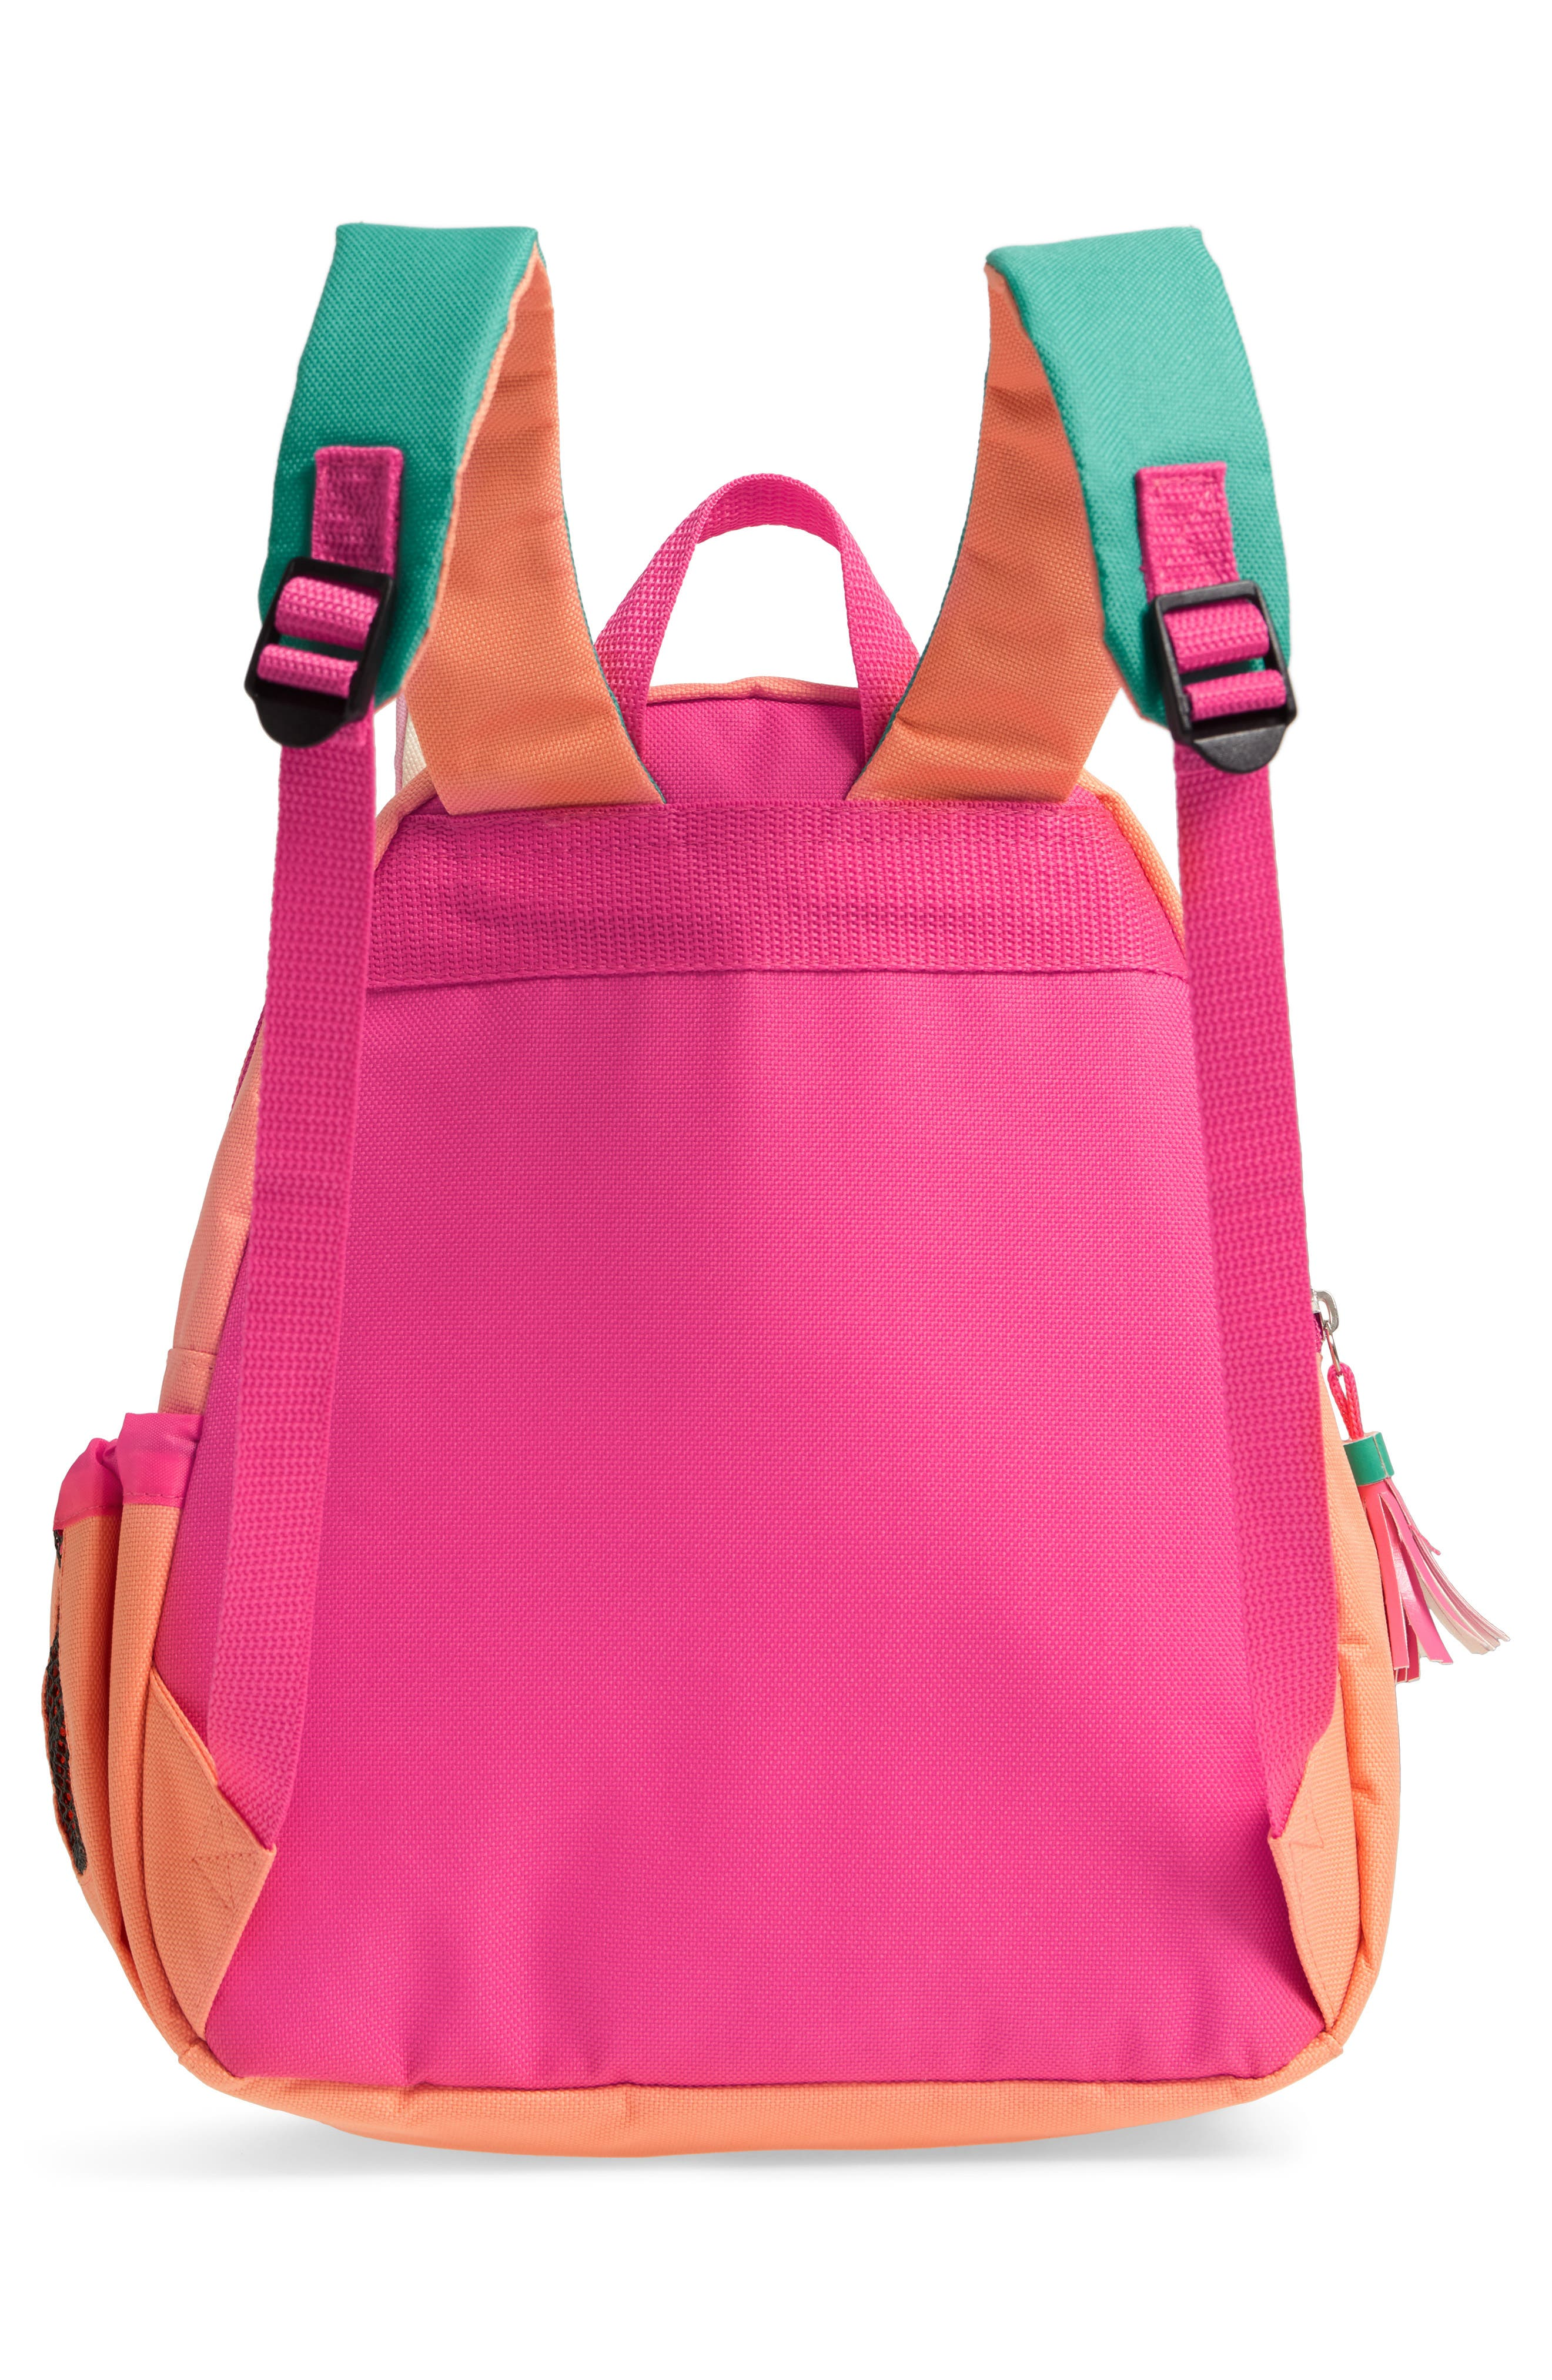 Zoo Pack Backpack,                             Alternate thumbnail 28, color,